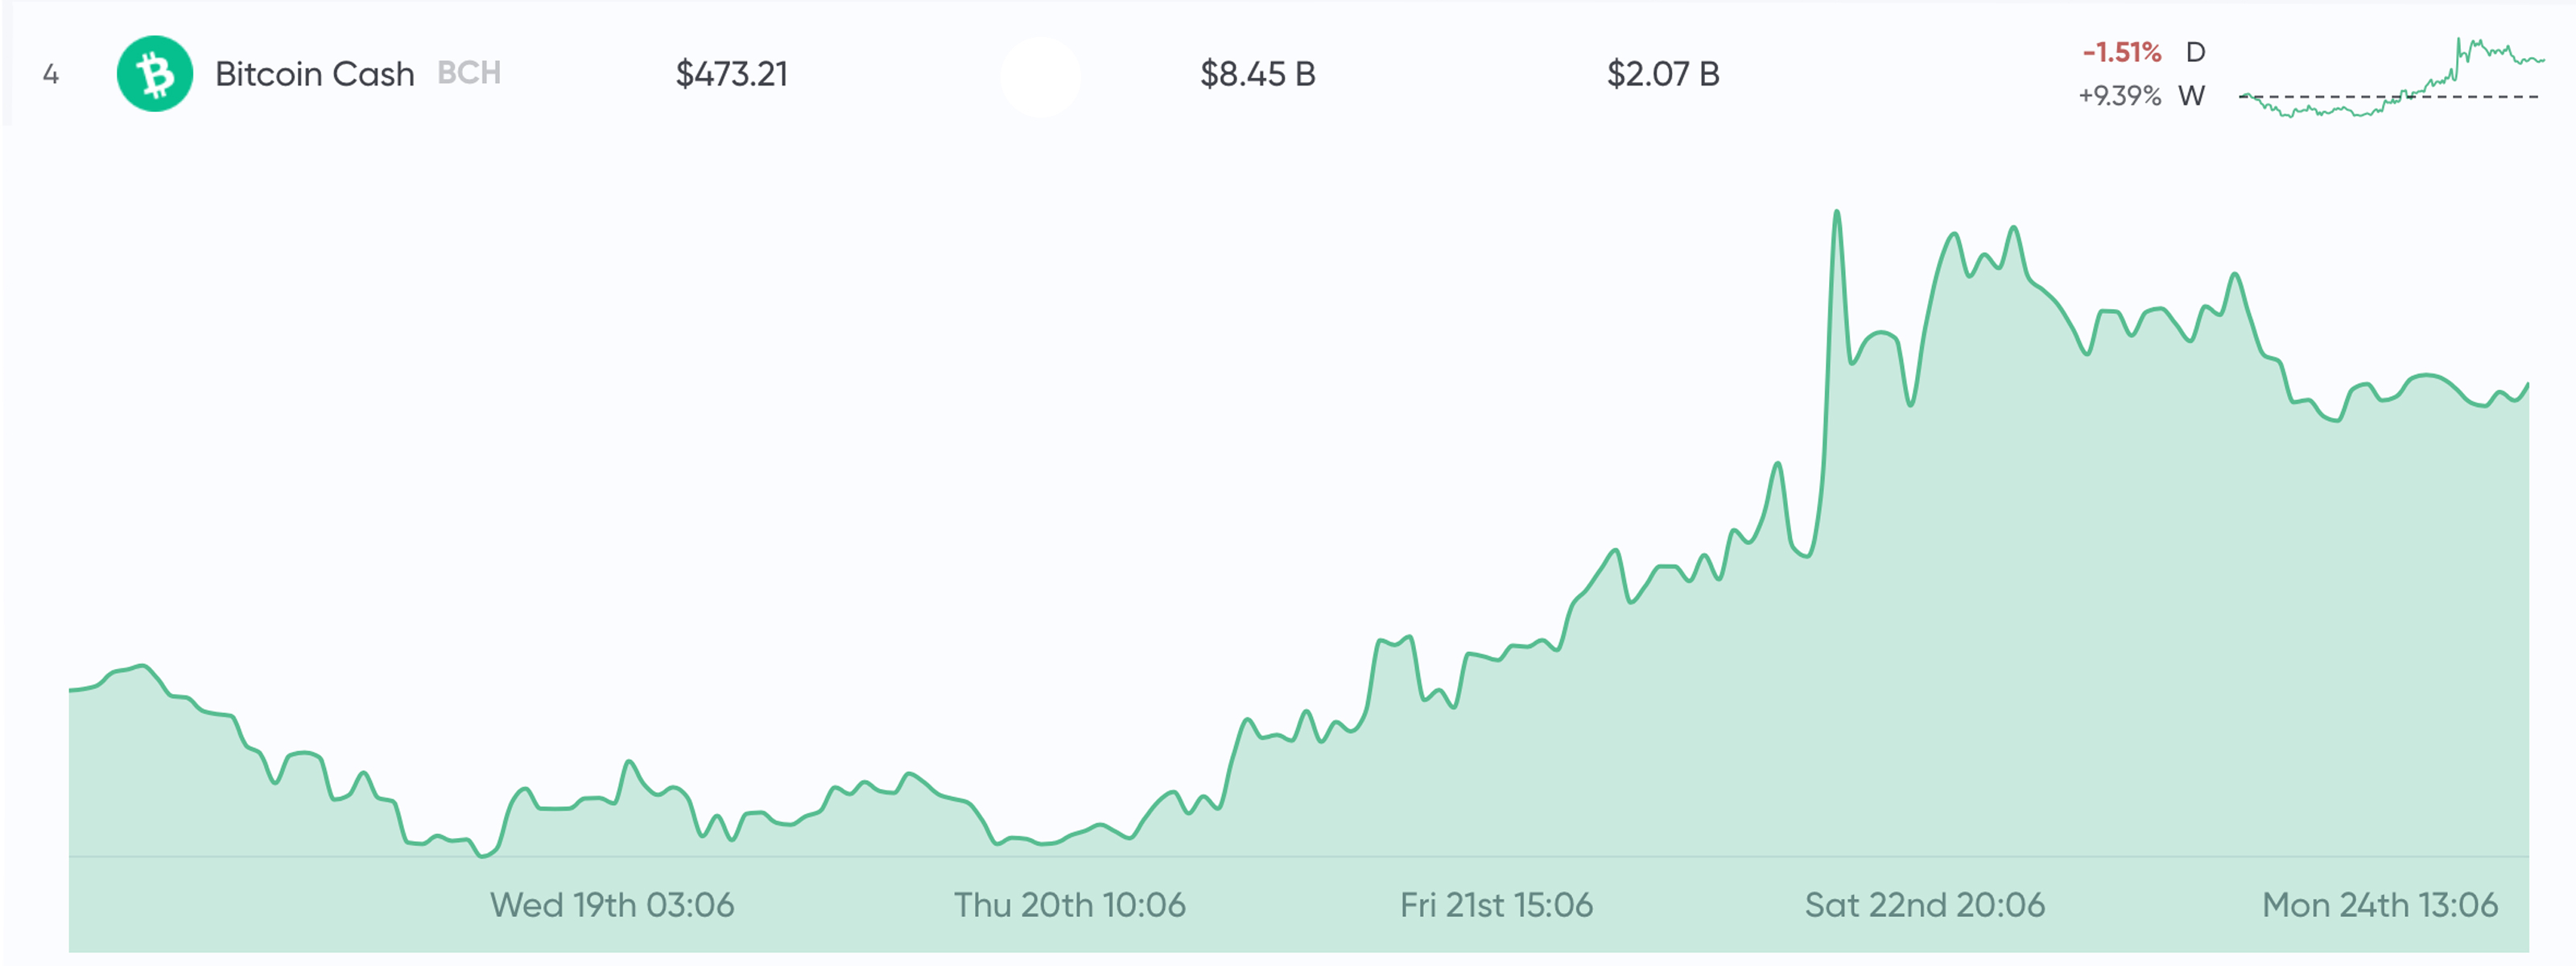 Bitcoin Cash Shows Phenomenal Growth in the First Two Quarters of 2019